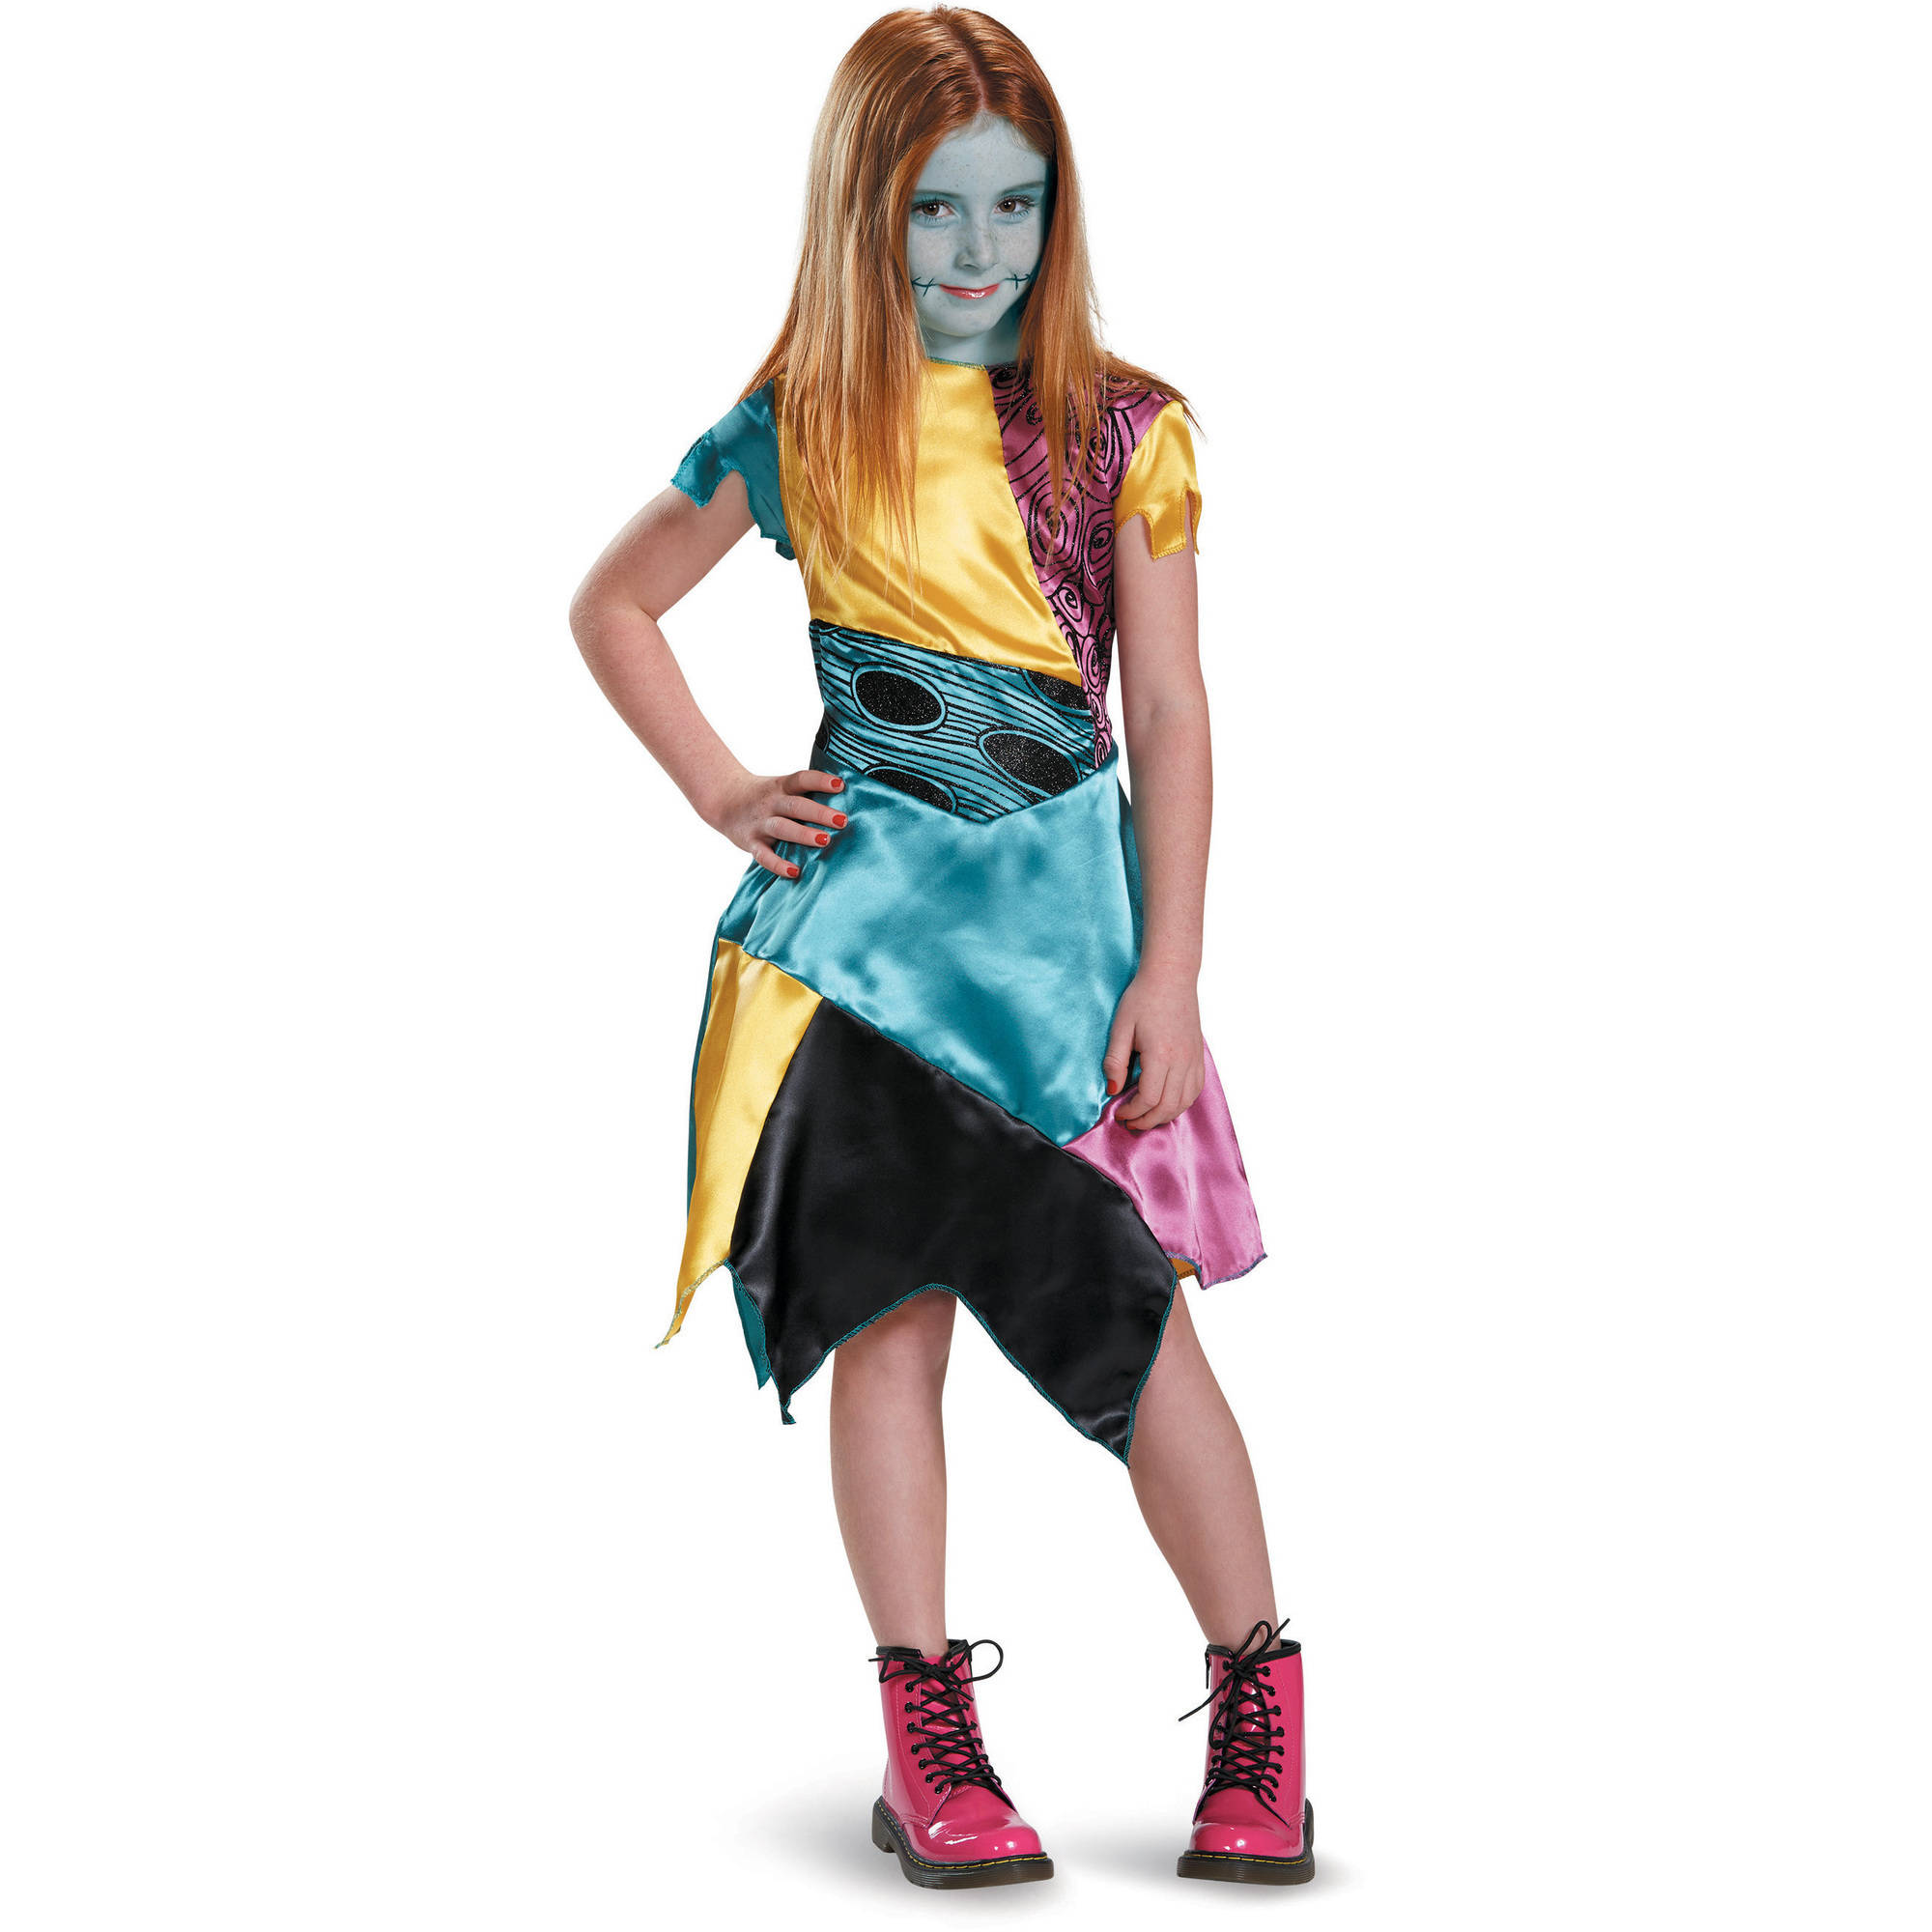 Disney nightmare before christmas classic sally child halloween costume Child Girls (10-12)